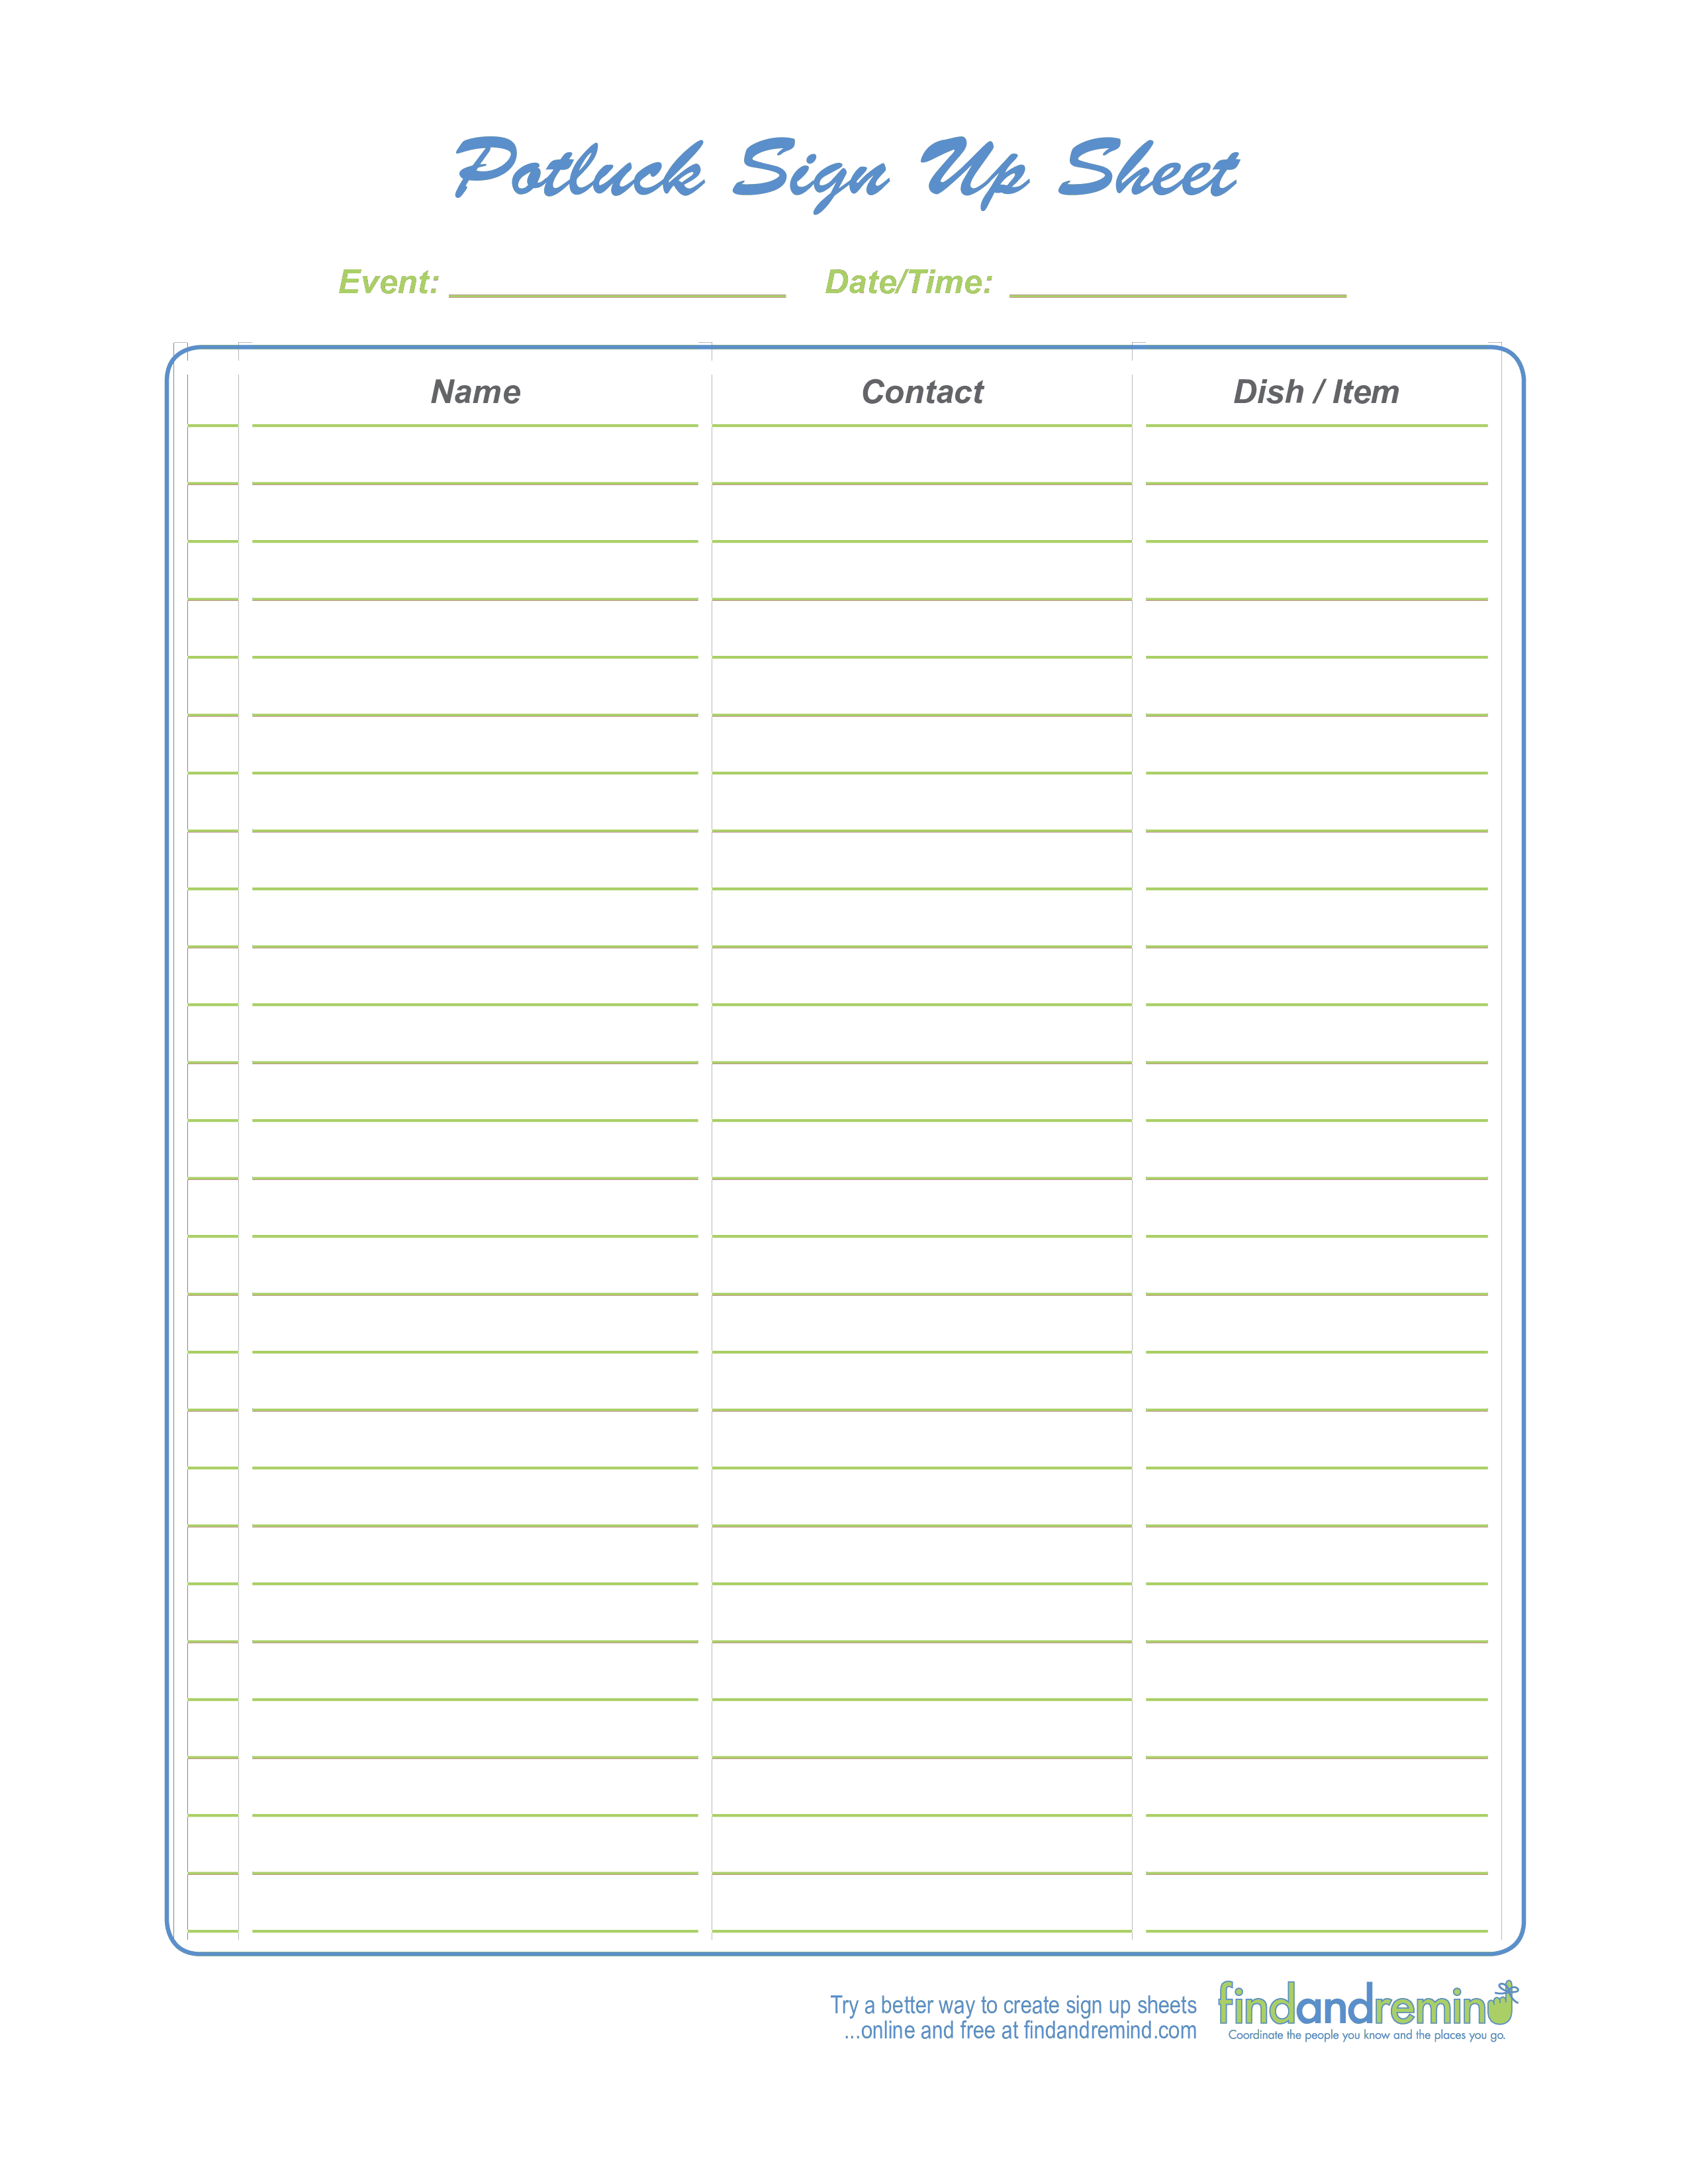 New Signing Sheet Template Exceltemplate Xls